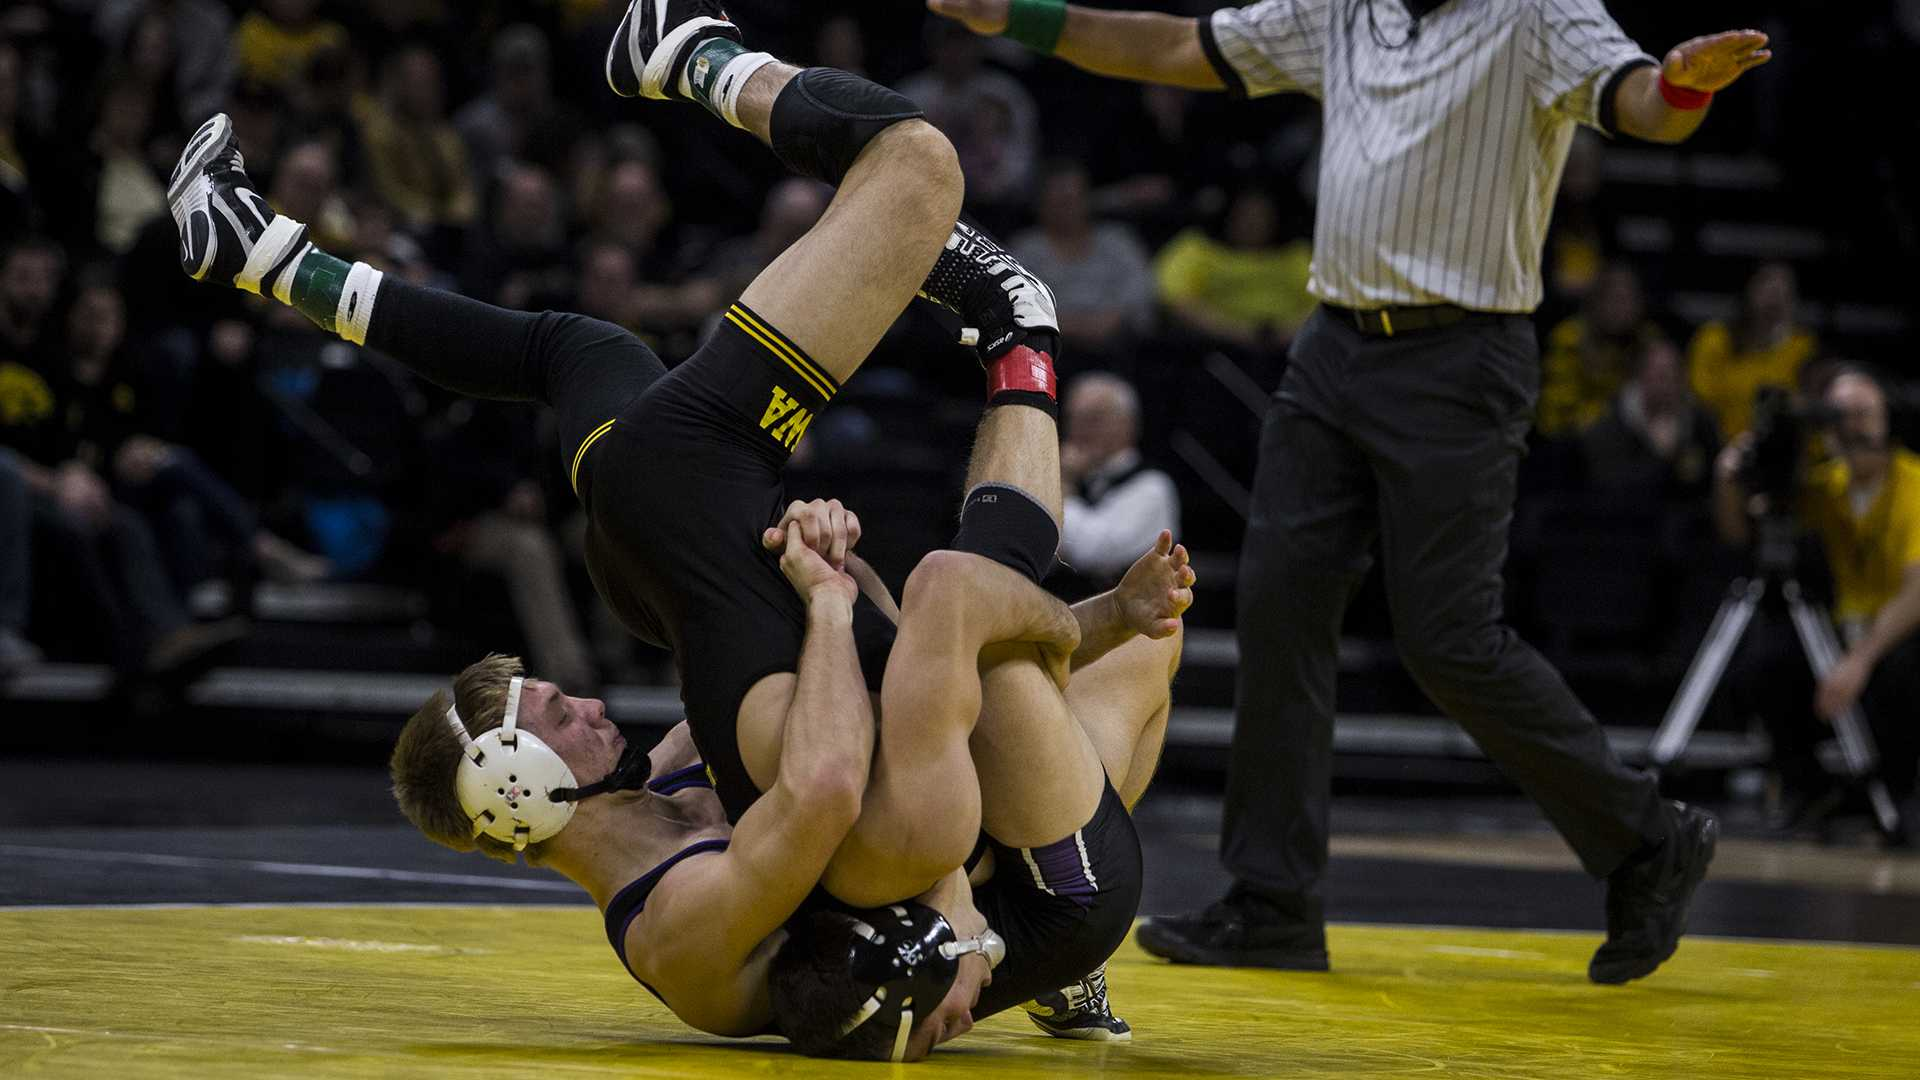 Iowa's #2 ranked Michael Kemerer wrestles Northwestern's Shane Oster during the Iowa vs. Northwestern dual meet on Sunday, Feb. 4, 2018. Kemerer won a tech fall, 17-2. The Hawkeyes defeated the wildcats 33-2. (Nick Rohlman/The Daily Iowan)